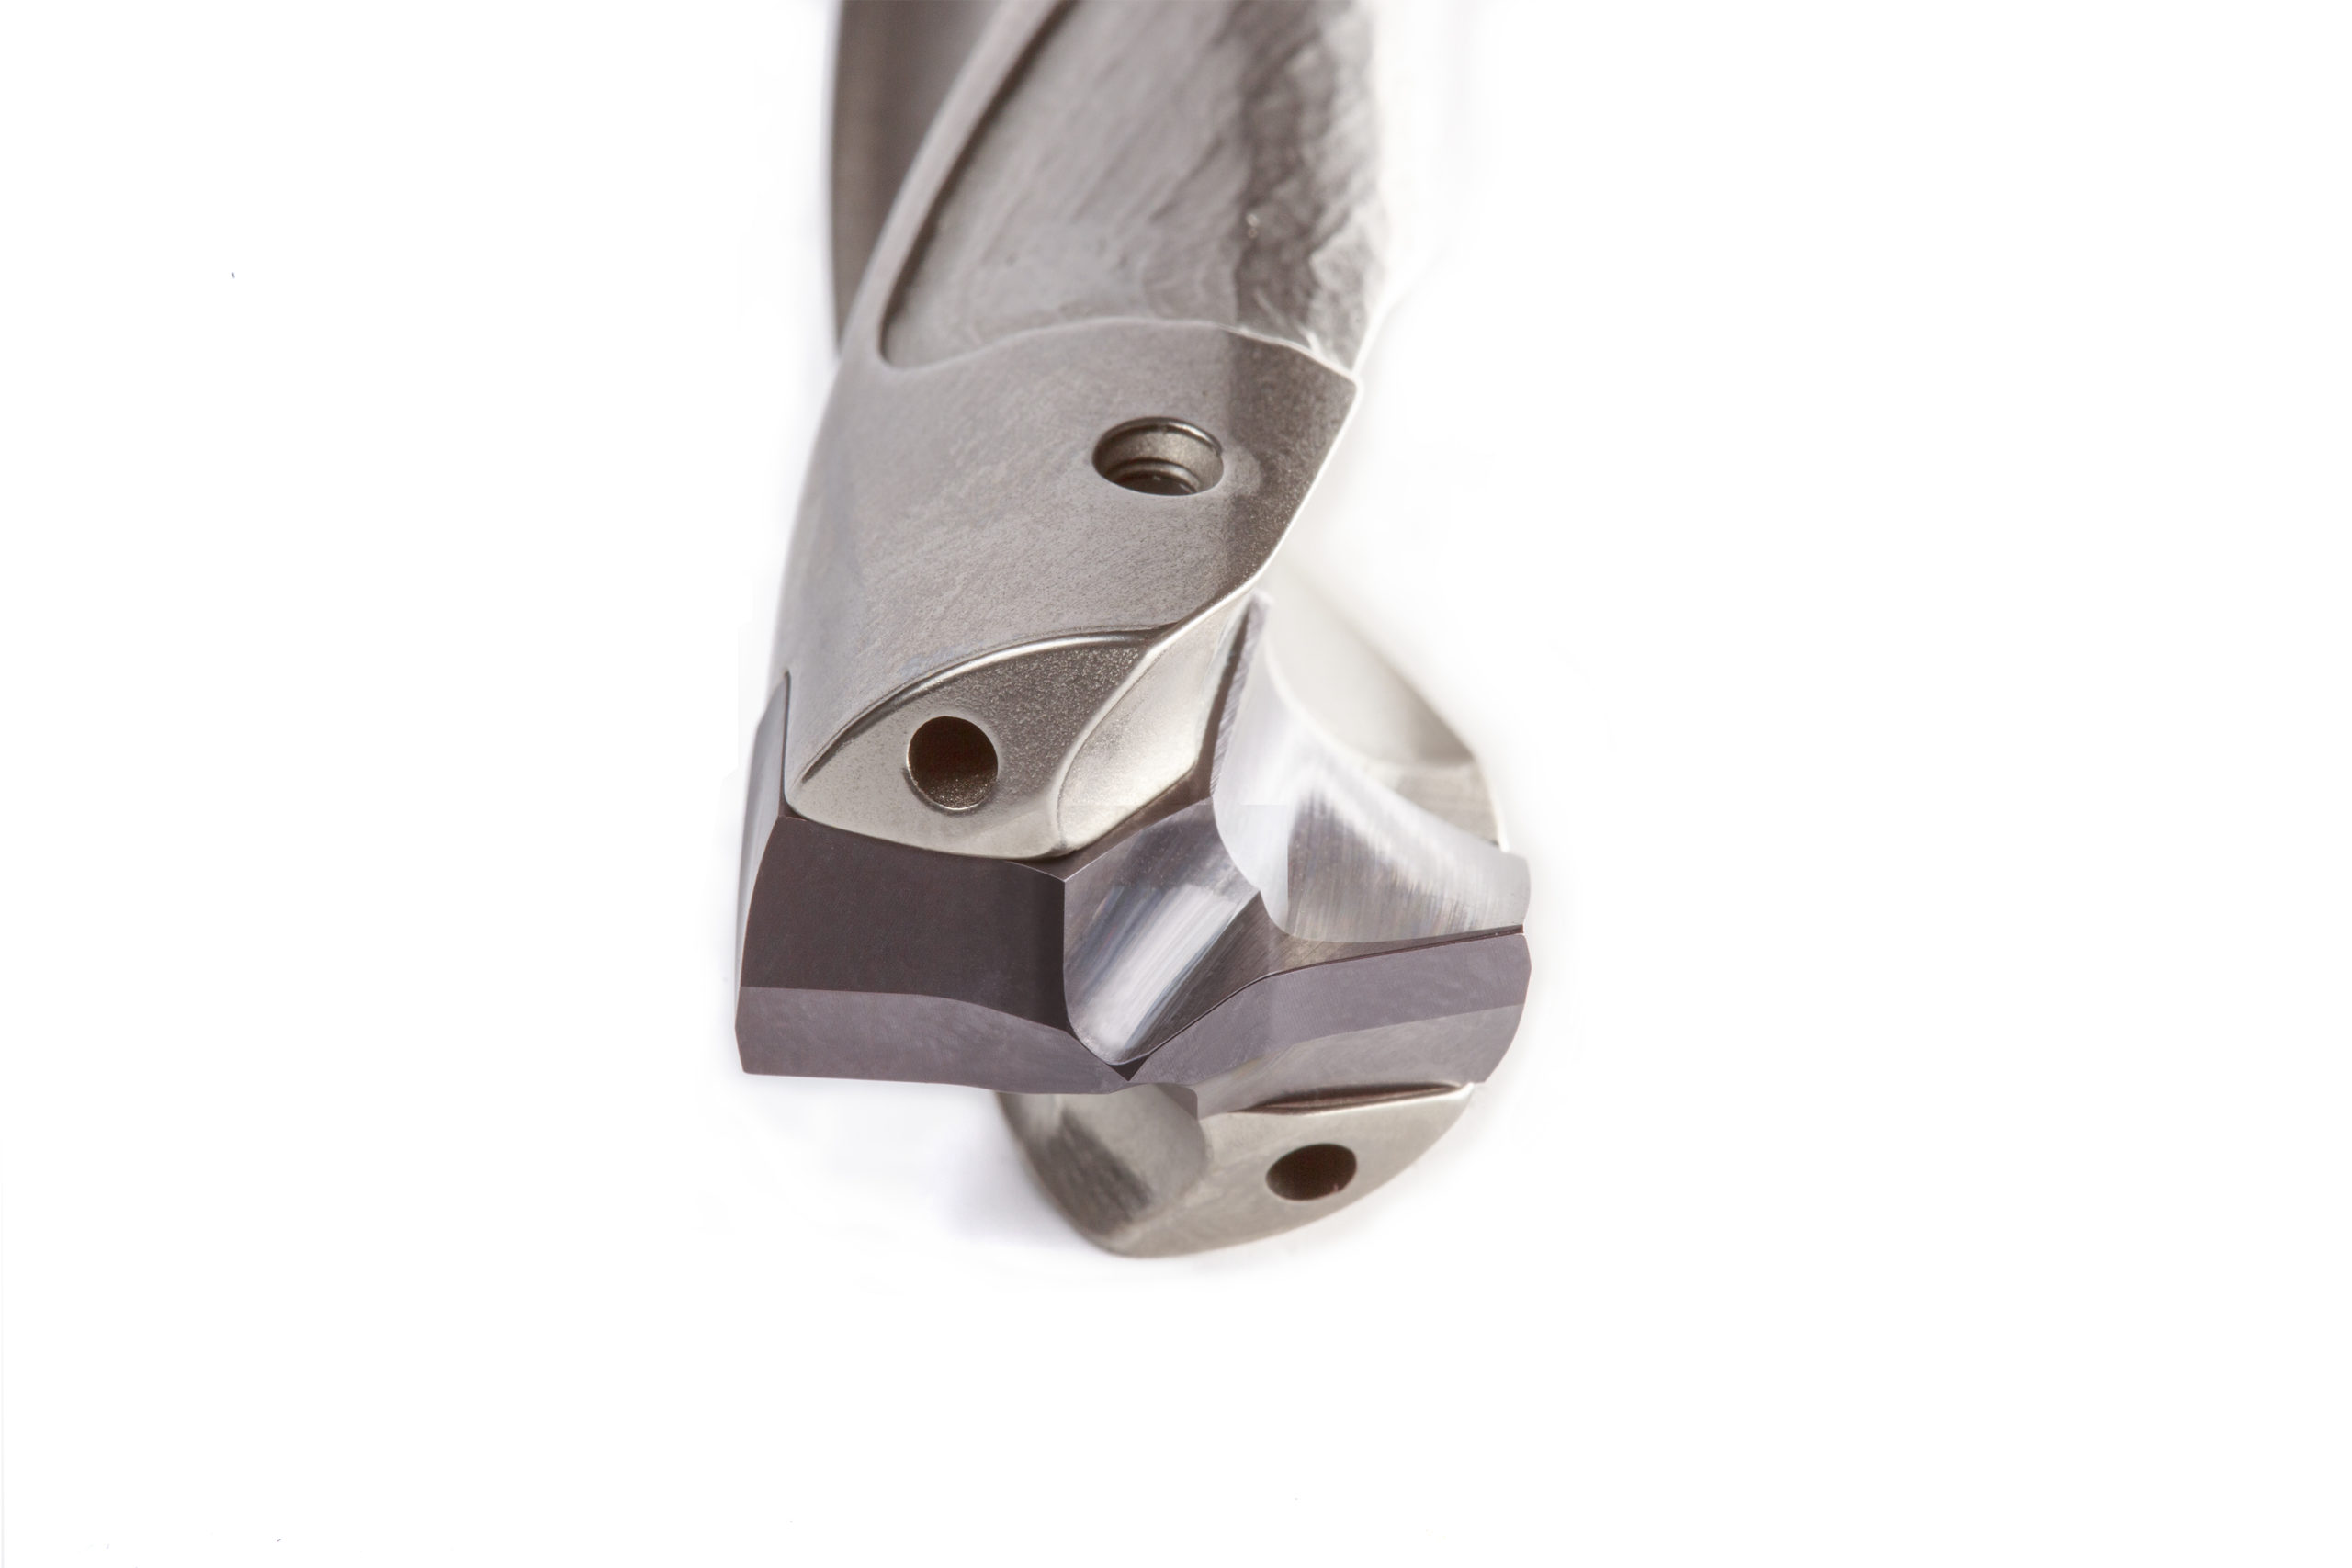 https://cdn.mtdcnc.global/cnc/wp-content/uploads/2020/05/20110512/The-new-QTD-indexable-insert-drill-with-an-innovative-patented-pyramid-tip-for-machining-steel-1-scaled.jpg